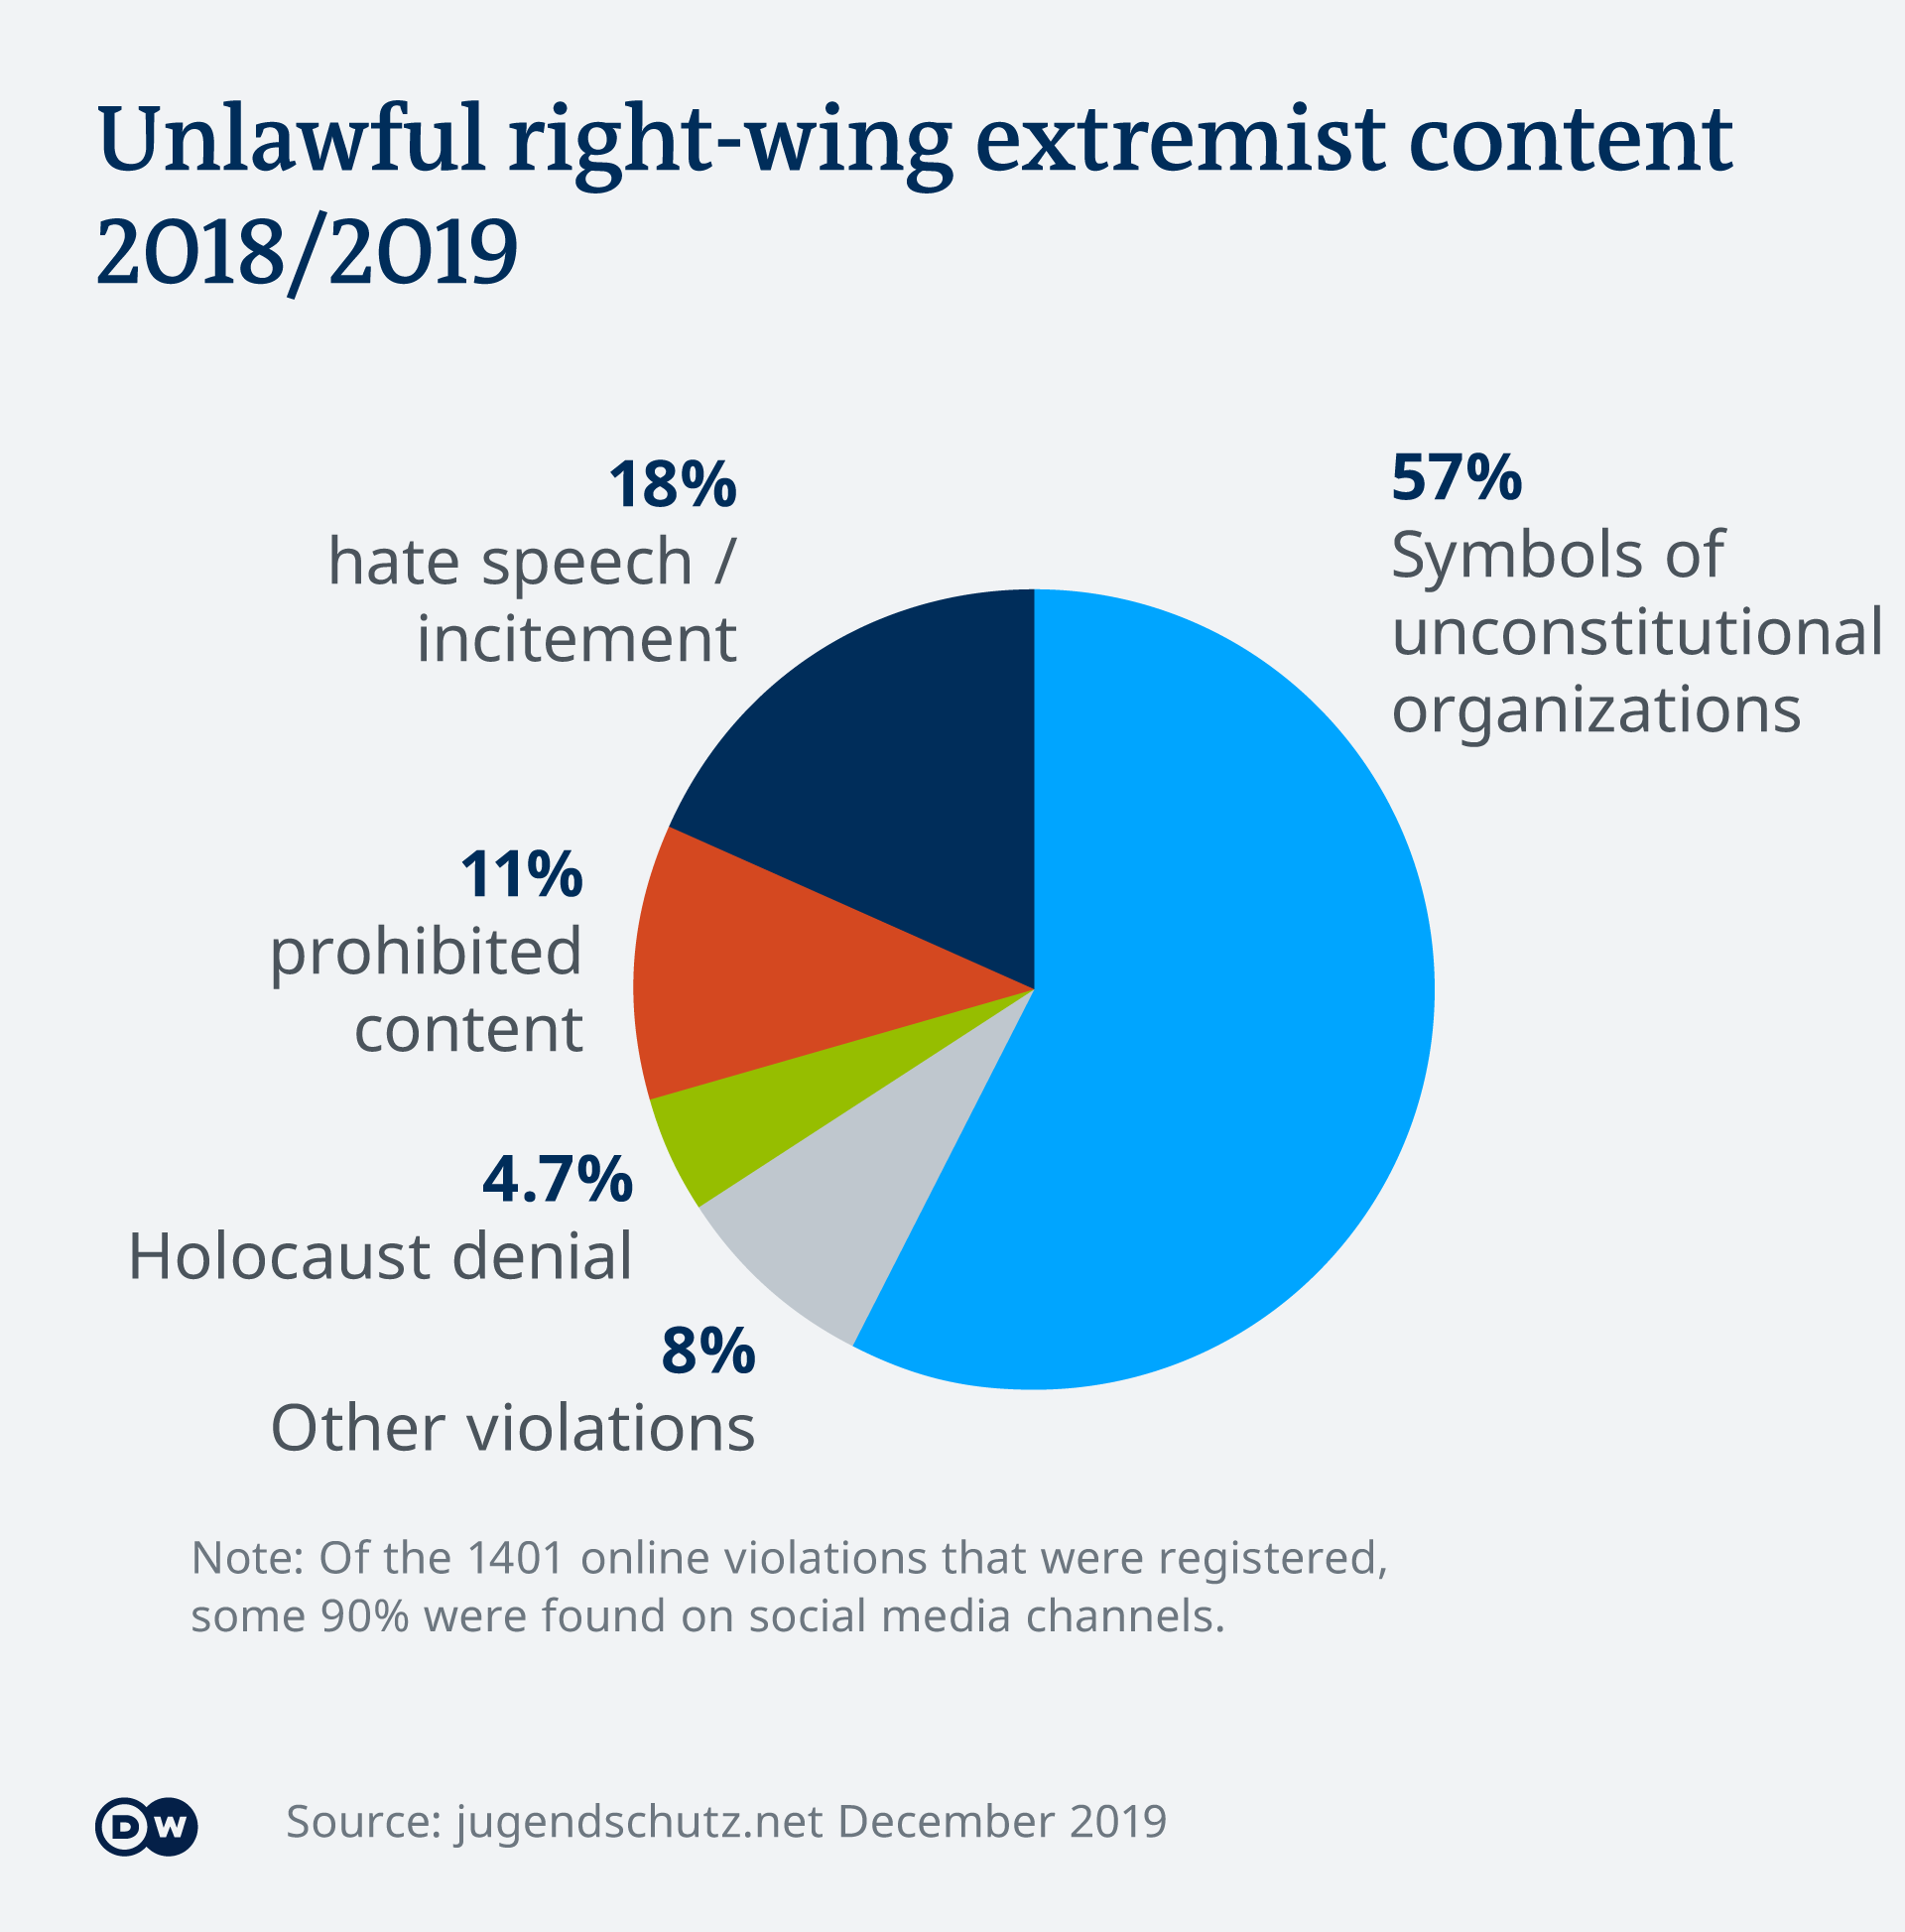 Illegal right-wing content pie chart